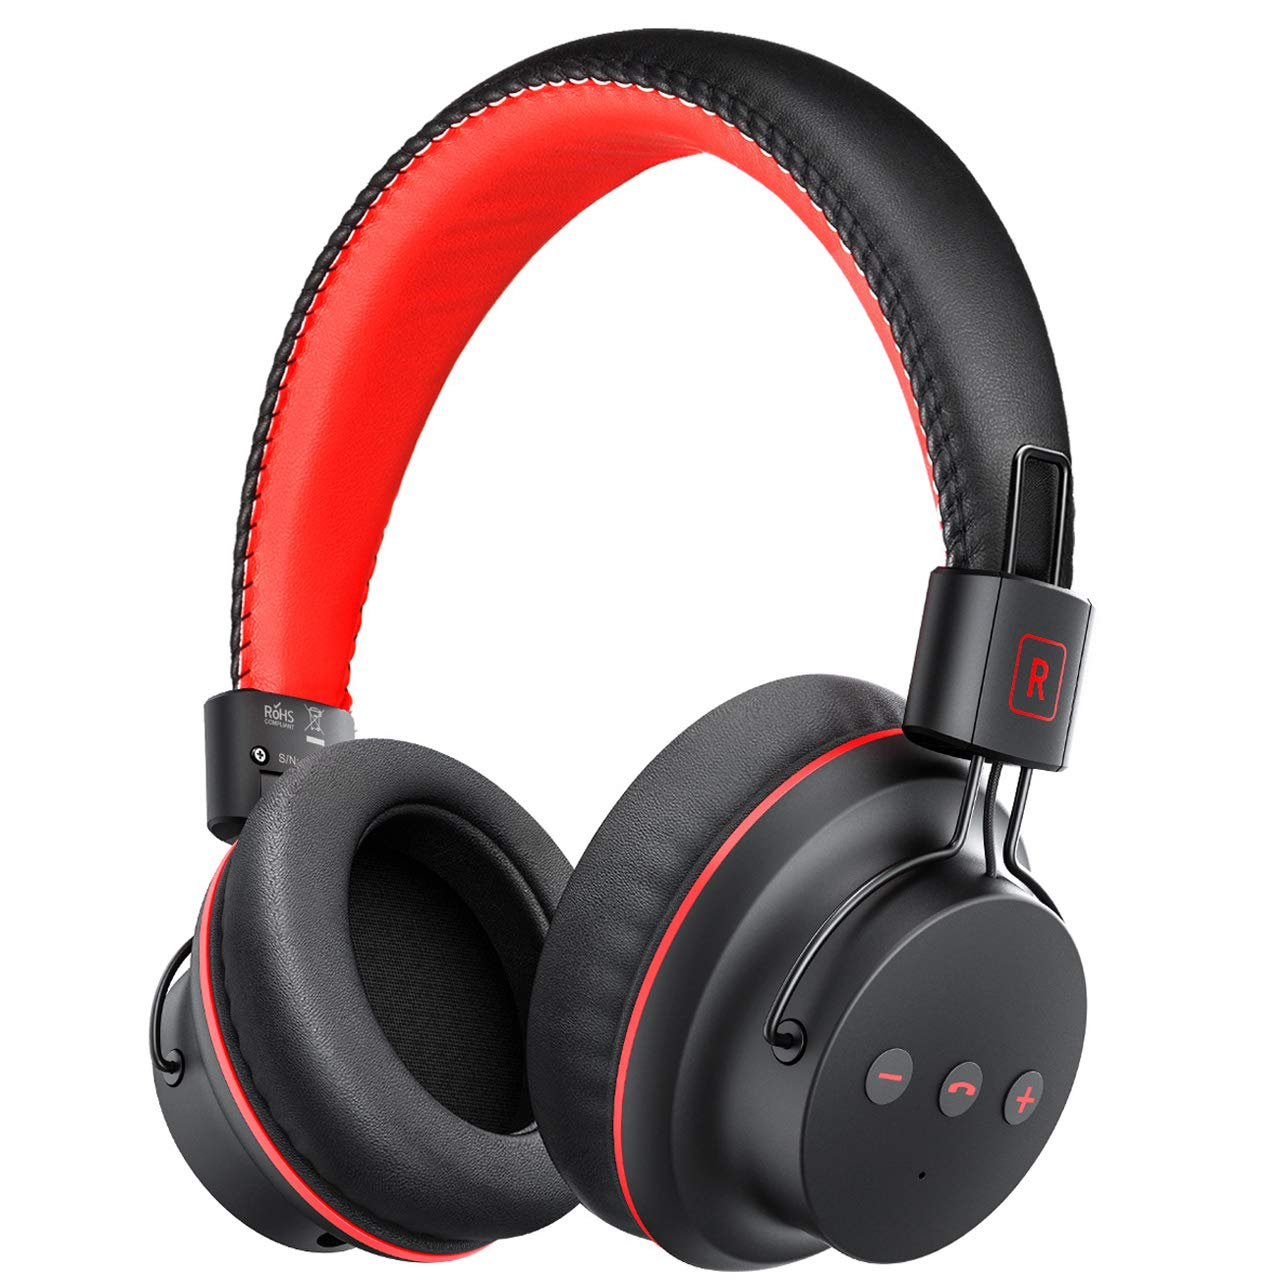 Best Bluetooth headphones under 50 1